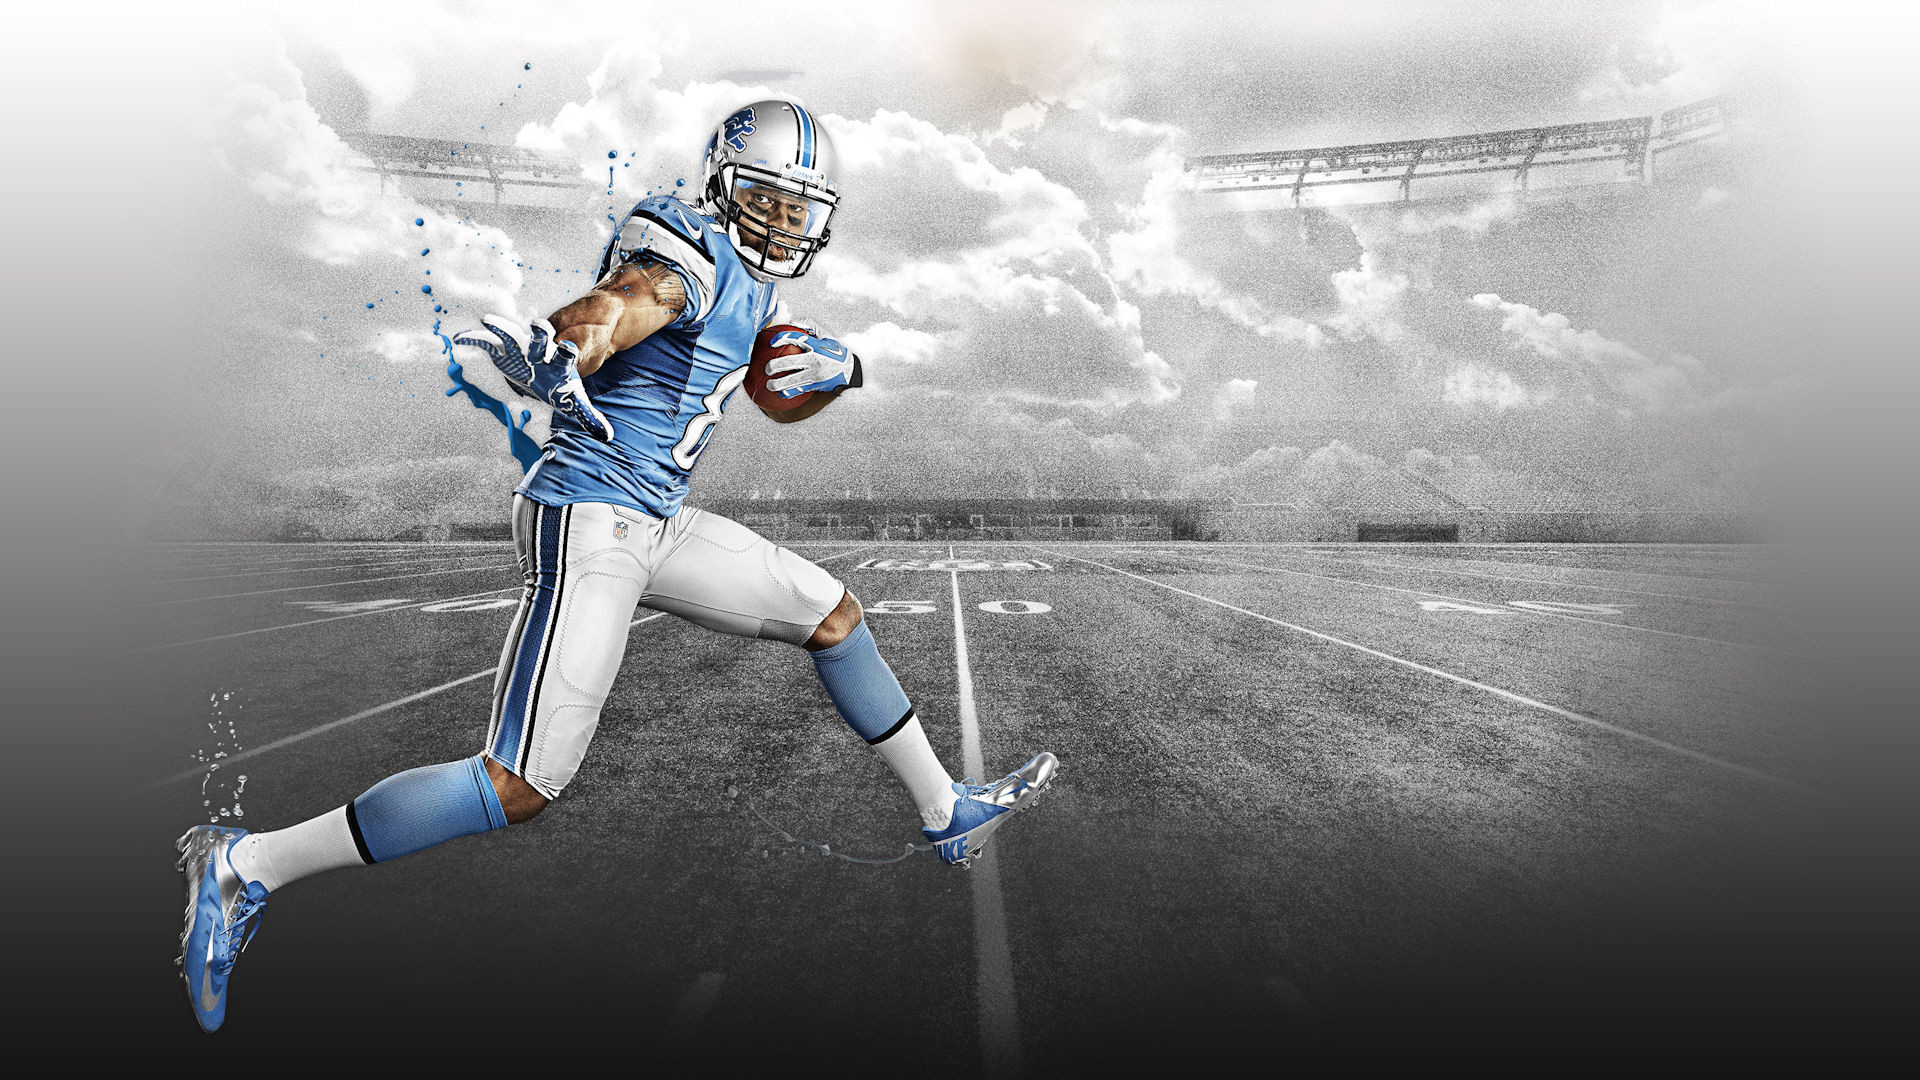 Cool Nfl Player Edits: Cool NFL Football Wallpapers ·① WallpaperTag